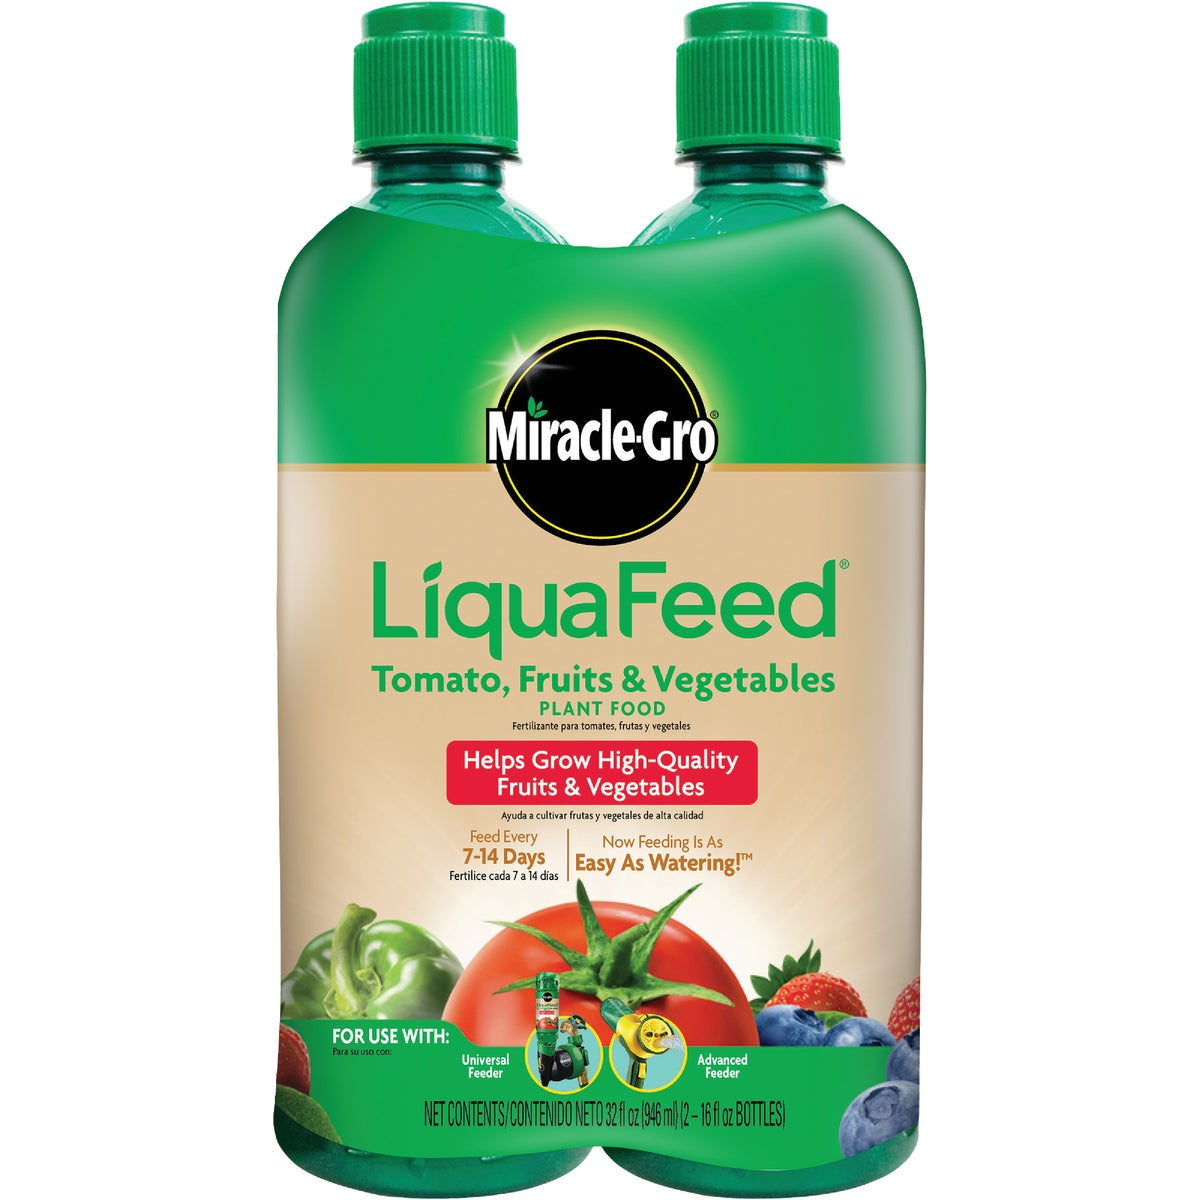 2PK MG FR VEG LIQ FEED - 100440 by Scotts Company